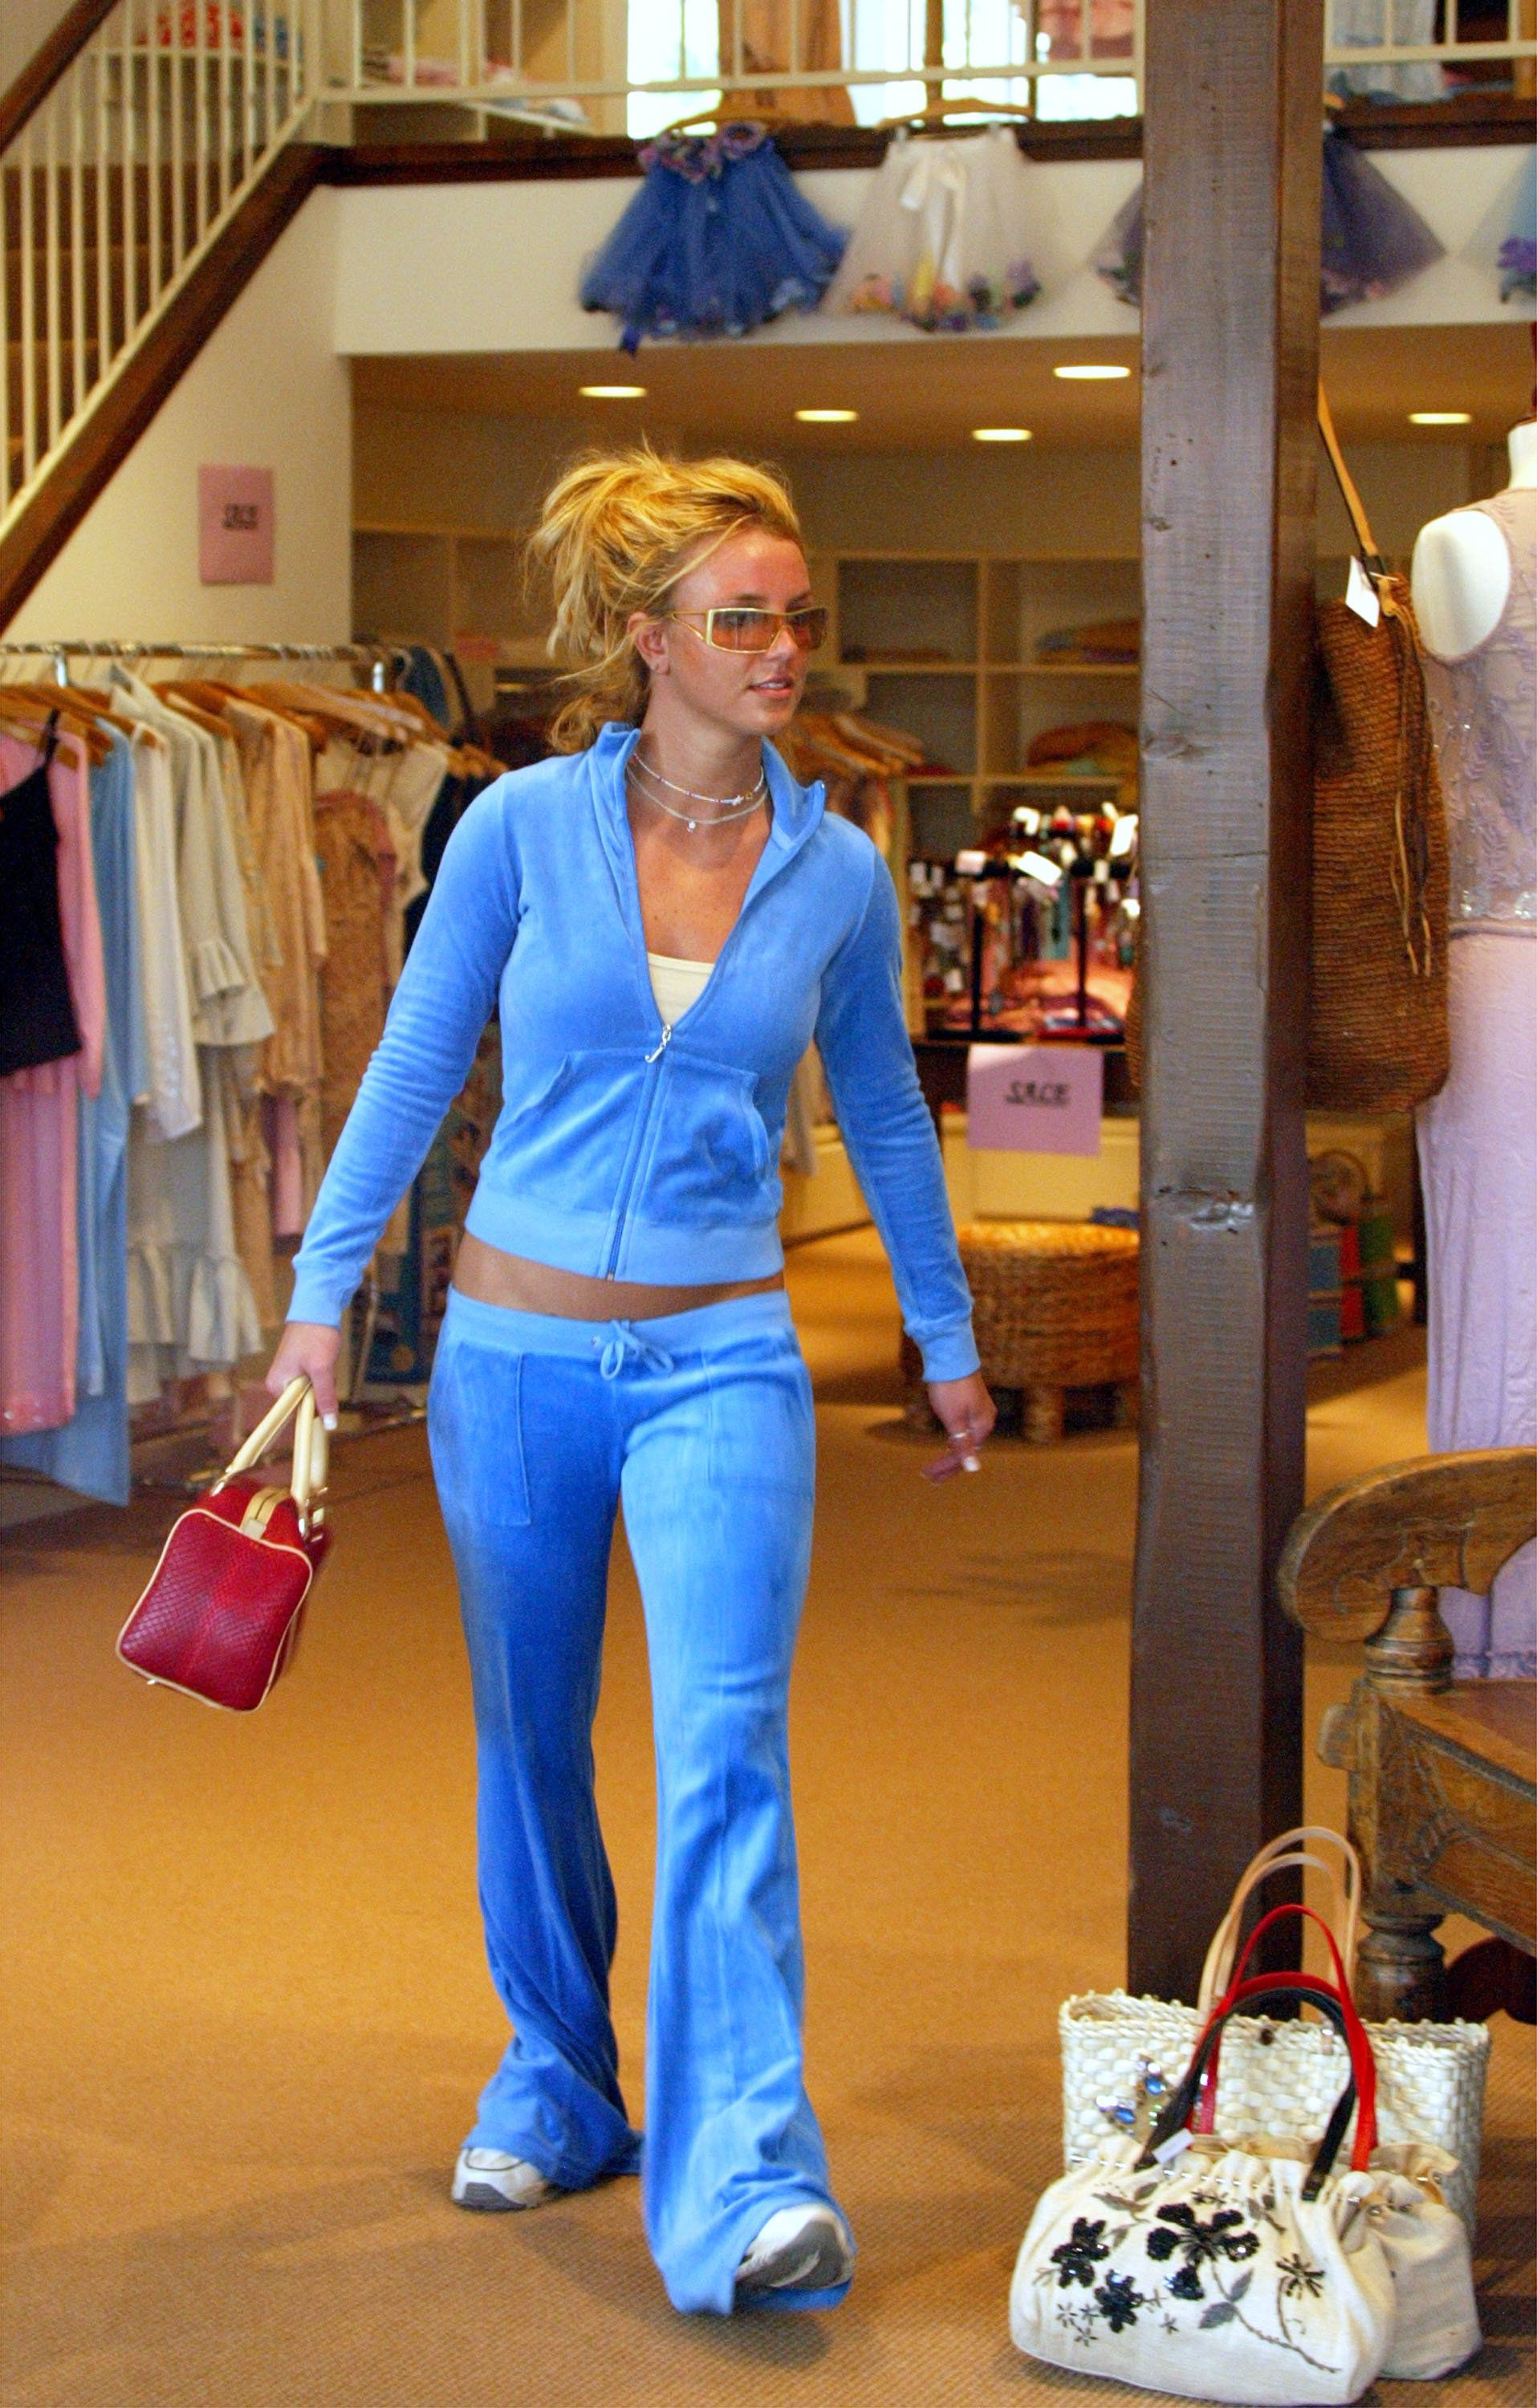 ATTN: Juicy Couture Tracksuits Are Making a Comeback forecasting